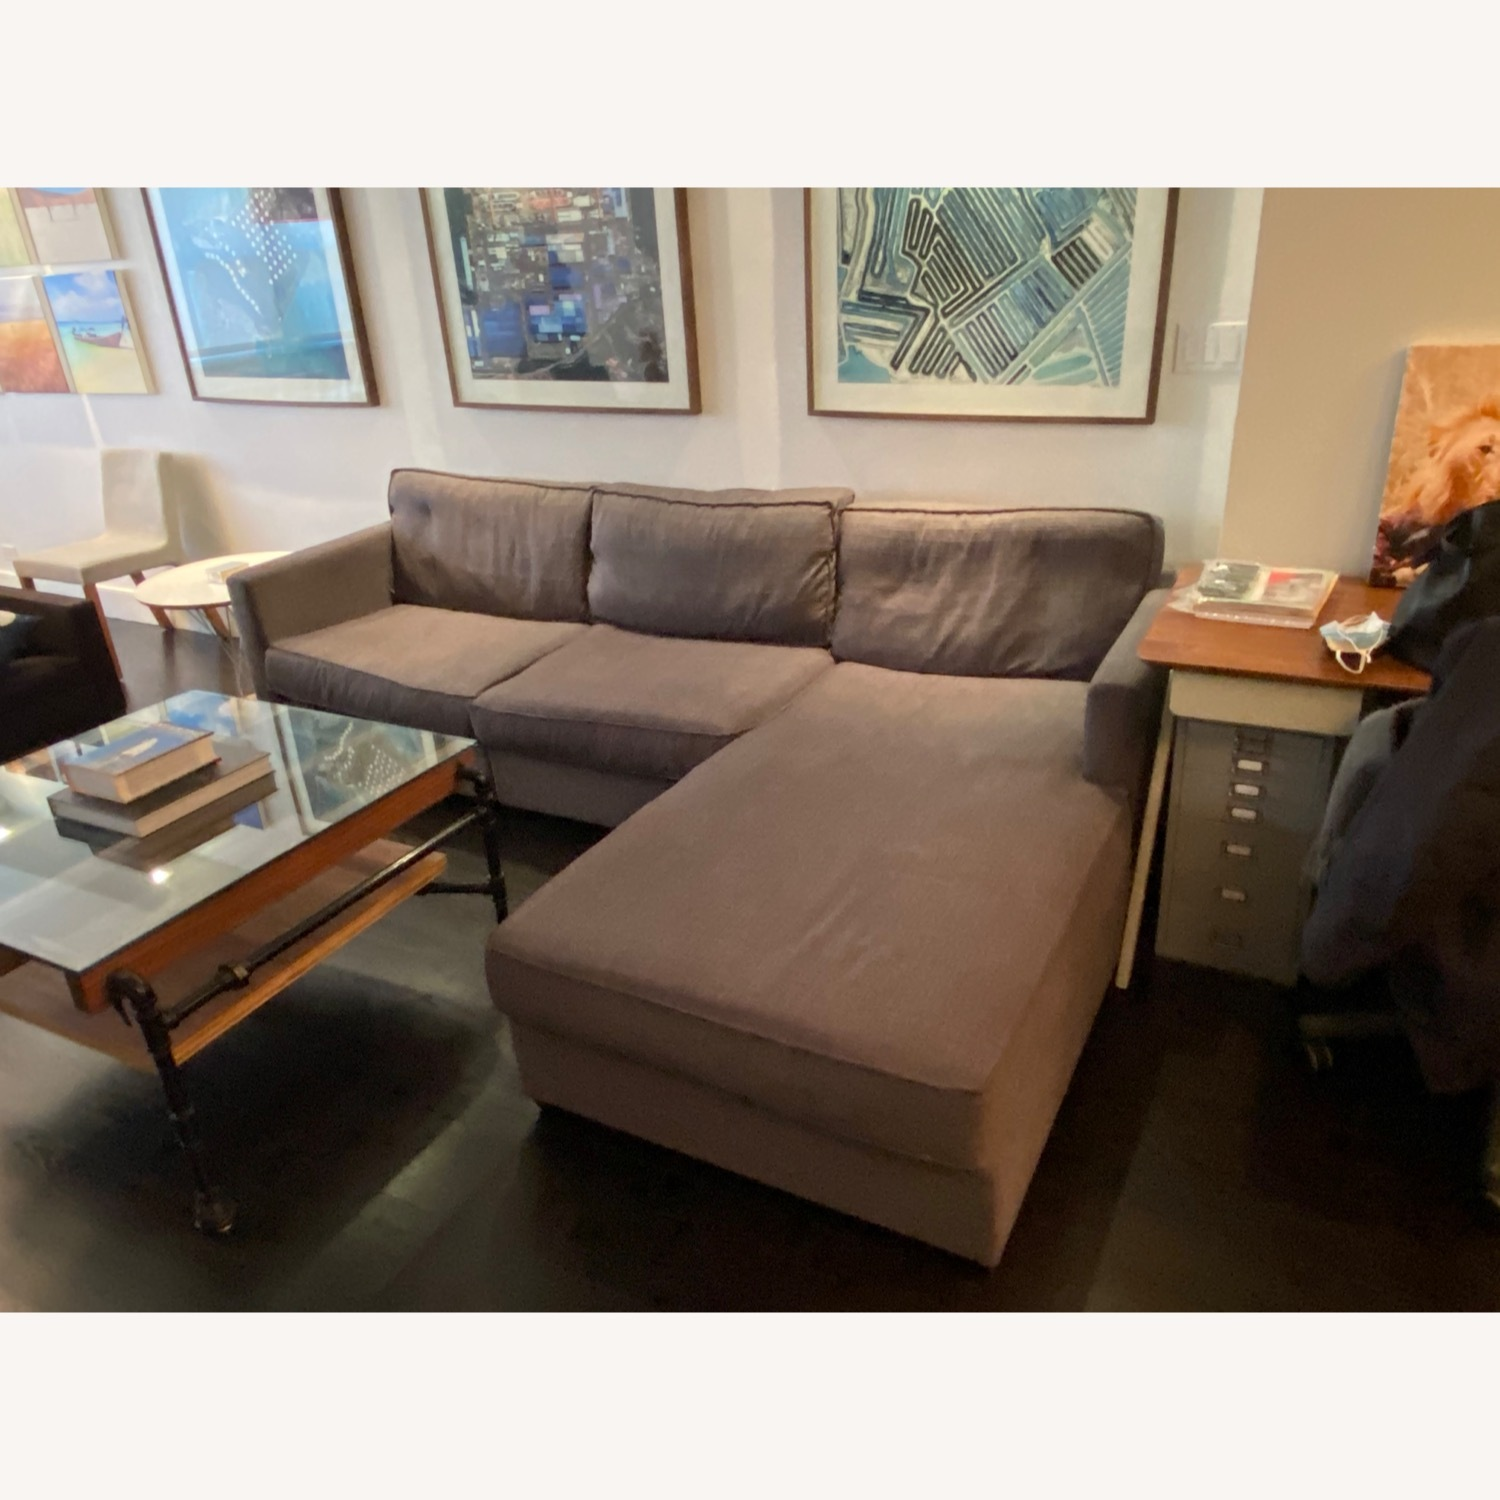 Gus Modern Dark Grey Couch with Chaise lounge - image-1